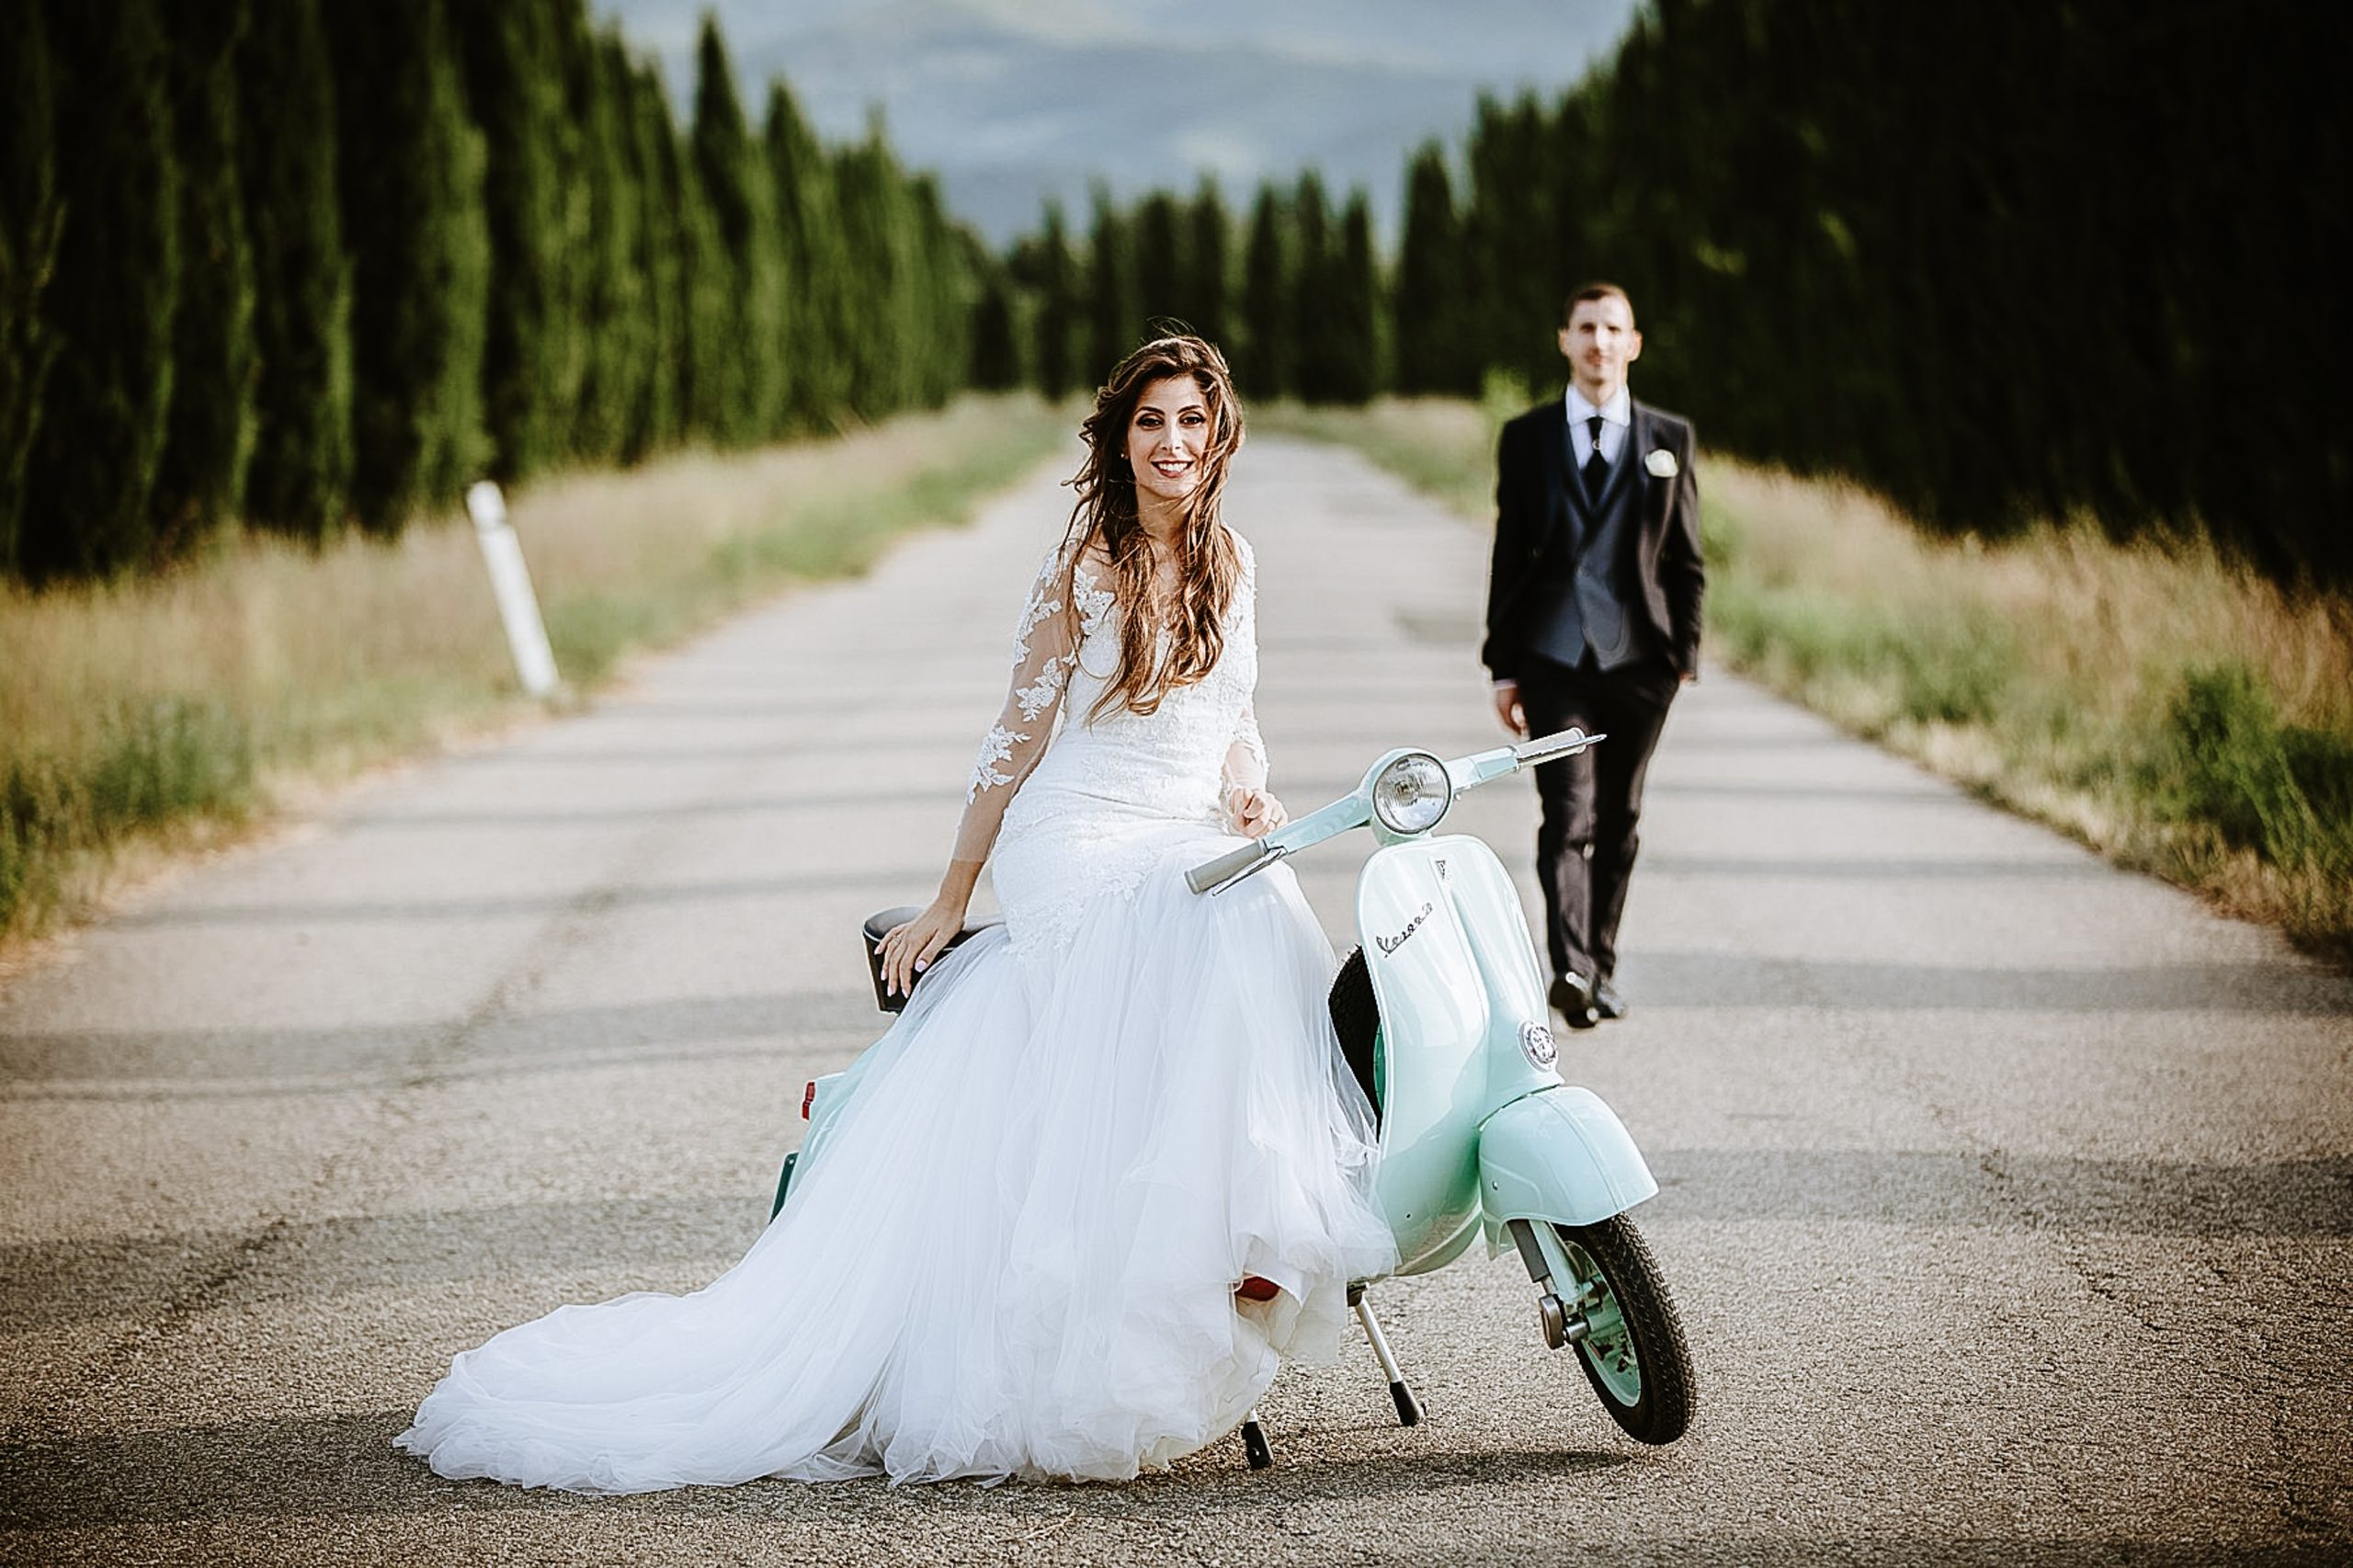 Matrimonio in Mugello